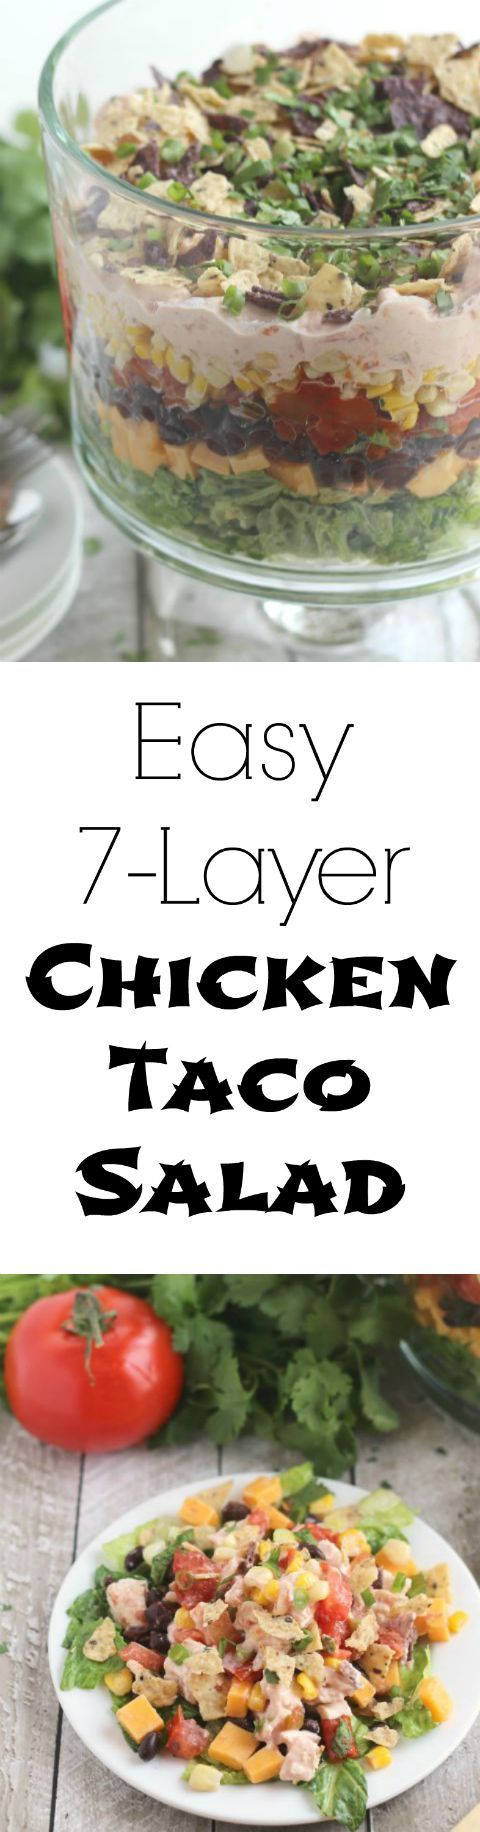 This showstopper 7-Layer Chicken Taco Salad will be the hit of the picnic! Our shortcuts and make-ahead tips make it quick and simple, too! ~ from Two Healthy Kitchens at www.TwoHealthyKitchens.com